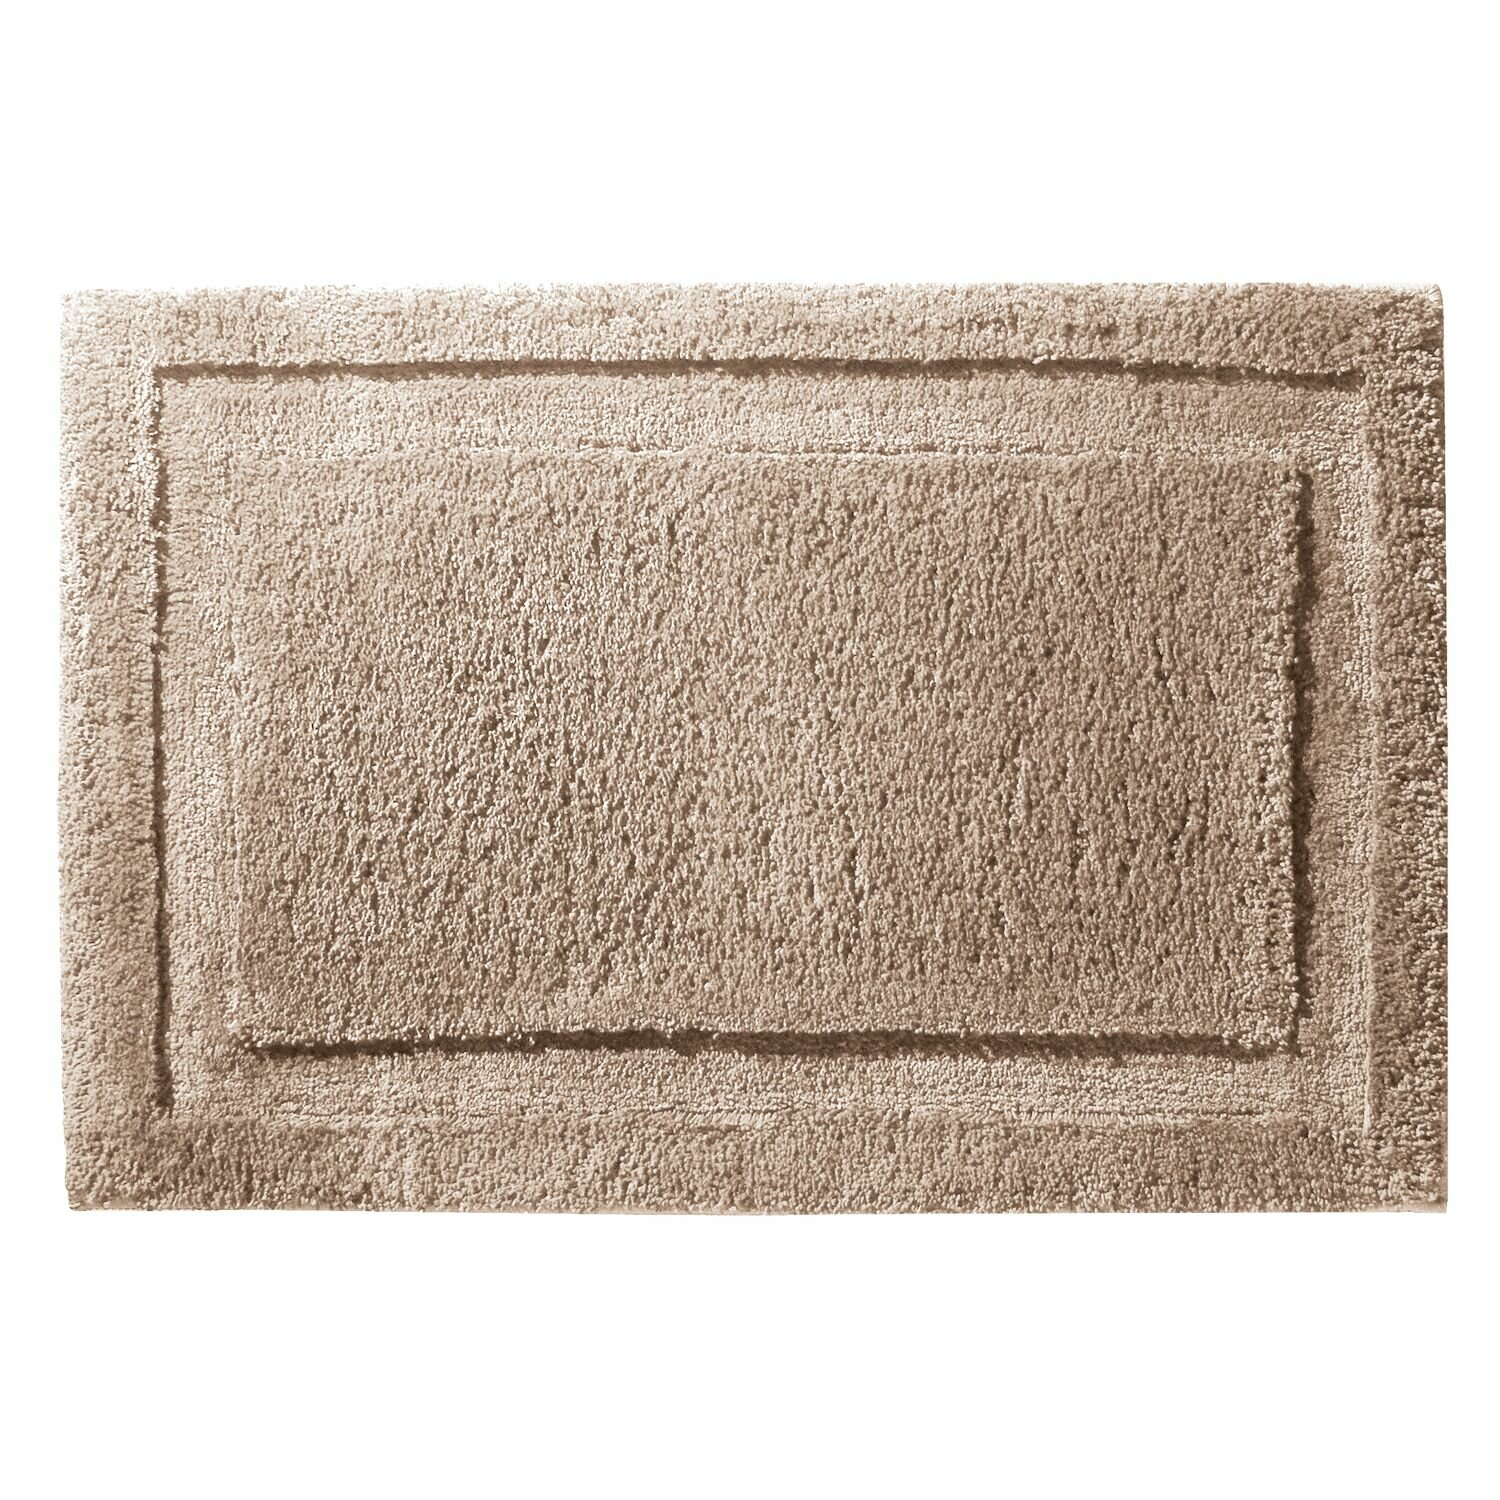 InterDesign Spa Bath Rug. InterDesign Spa Bath Rug  amp  Reviews   Wayfair